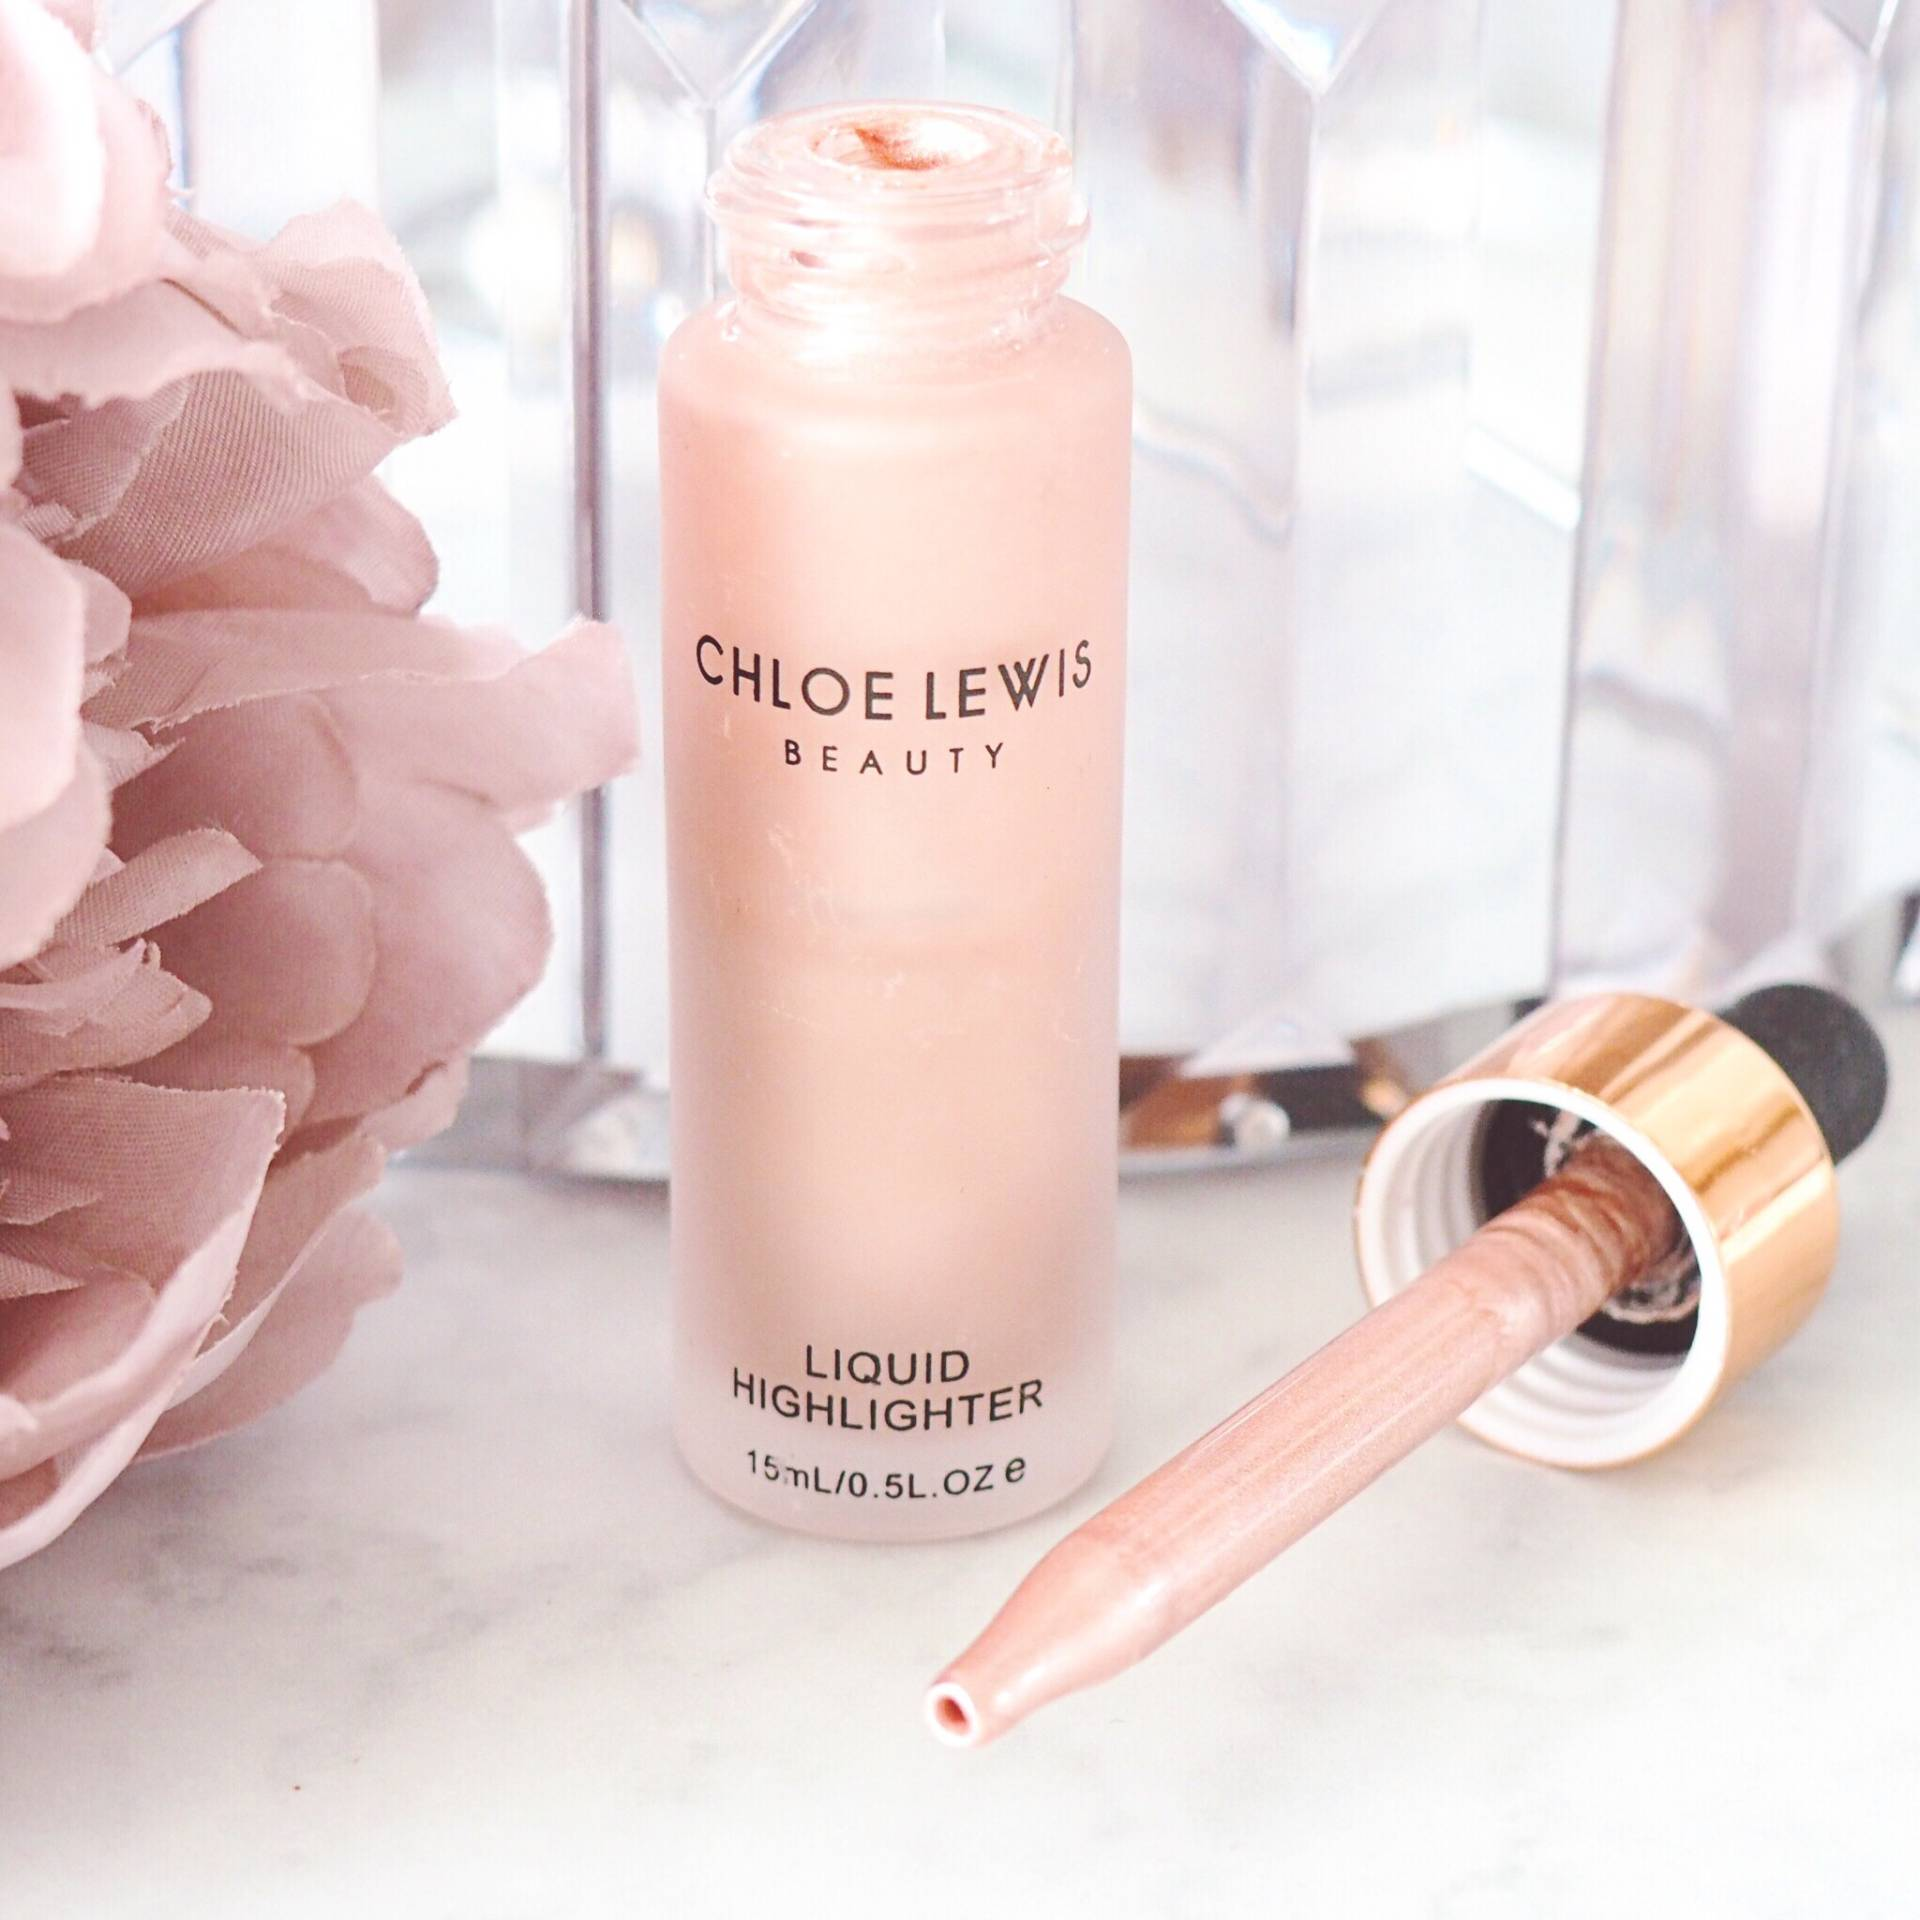 Chloe Lewis Highlighter